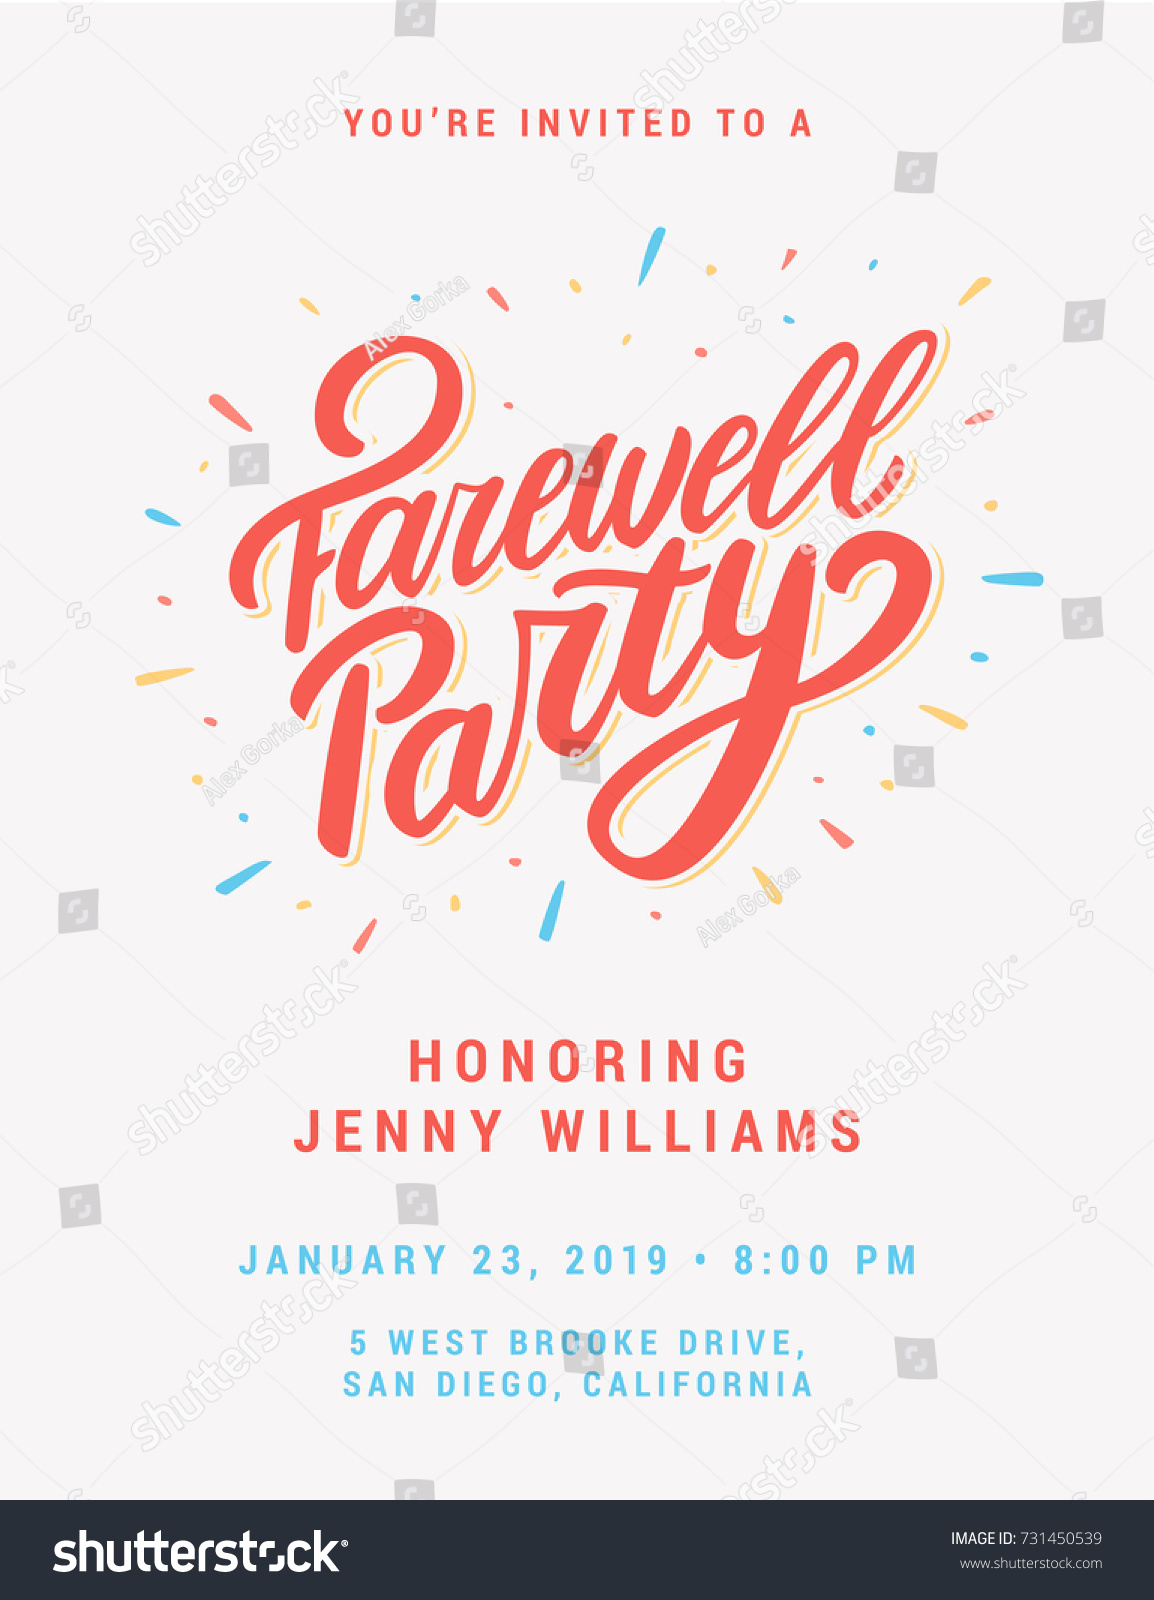 Farewell Party Invitation Stock Vector 731450539 - Shutterstock